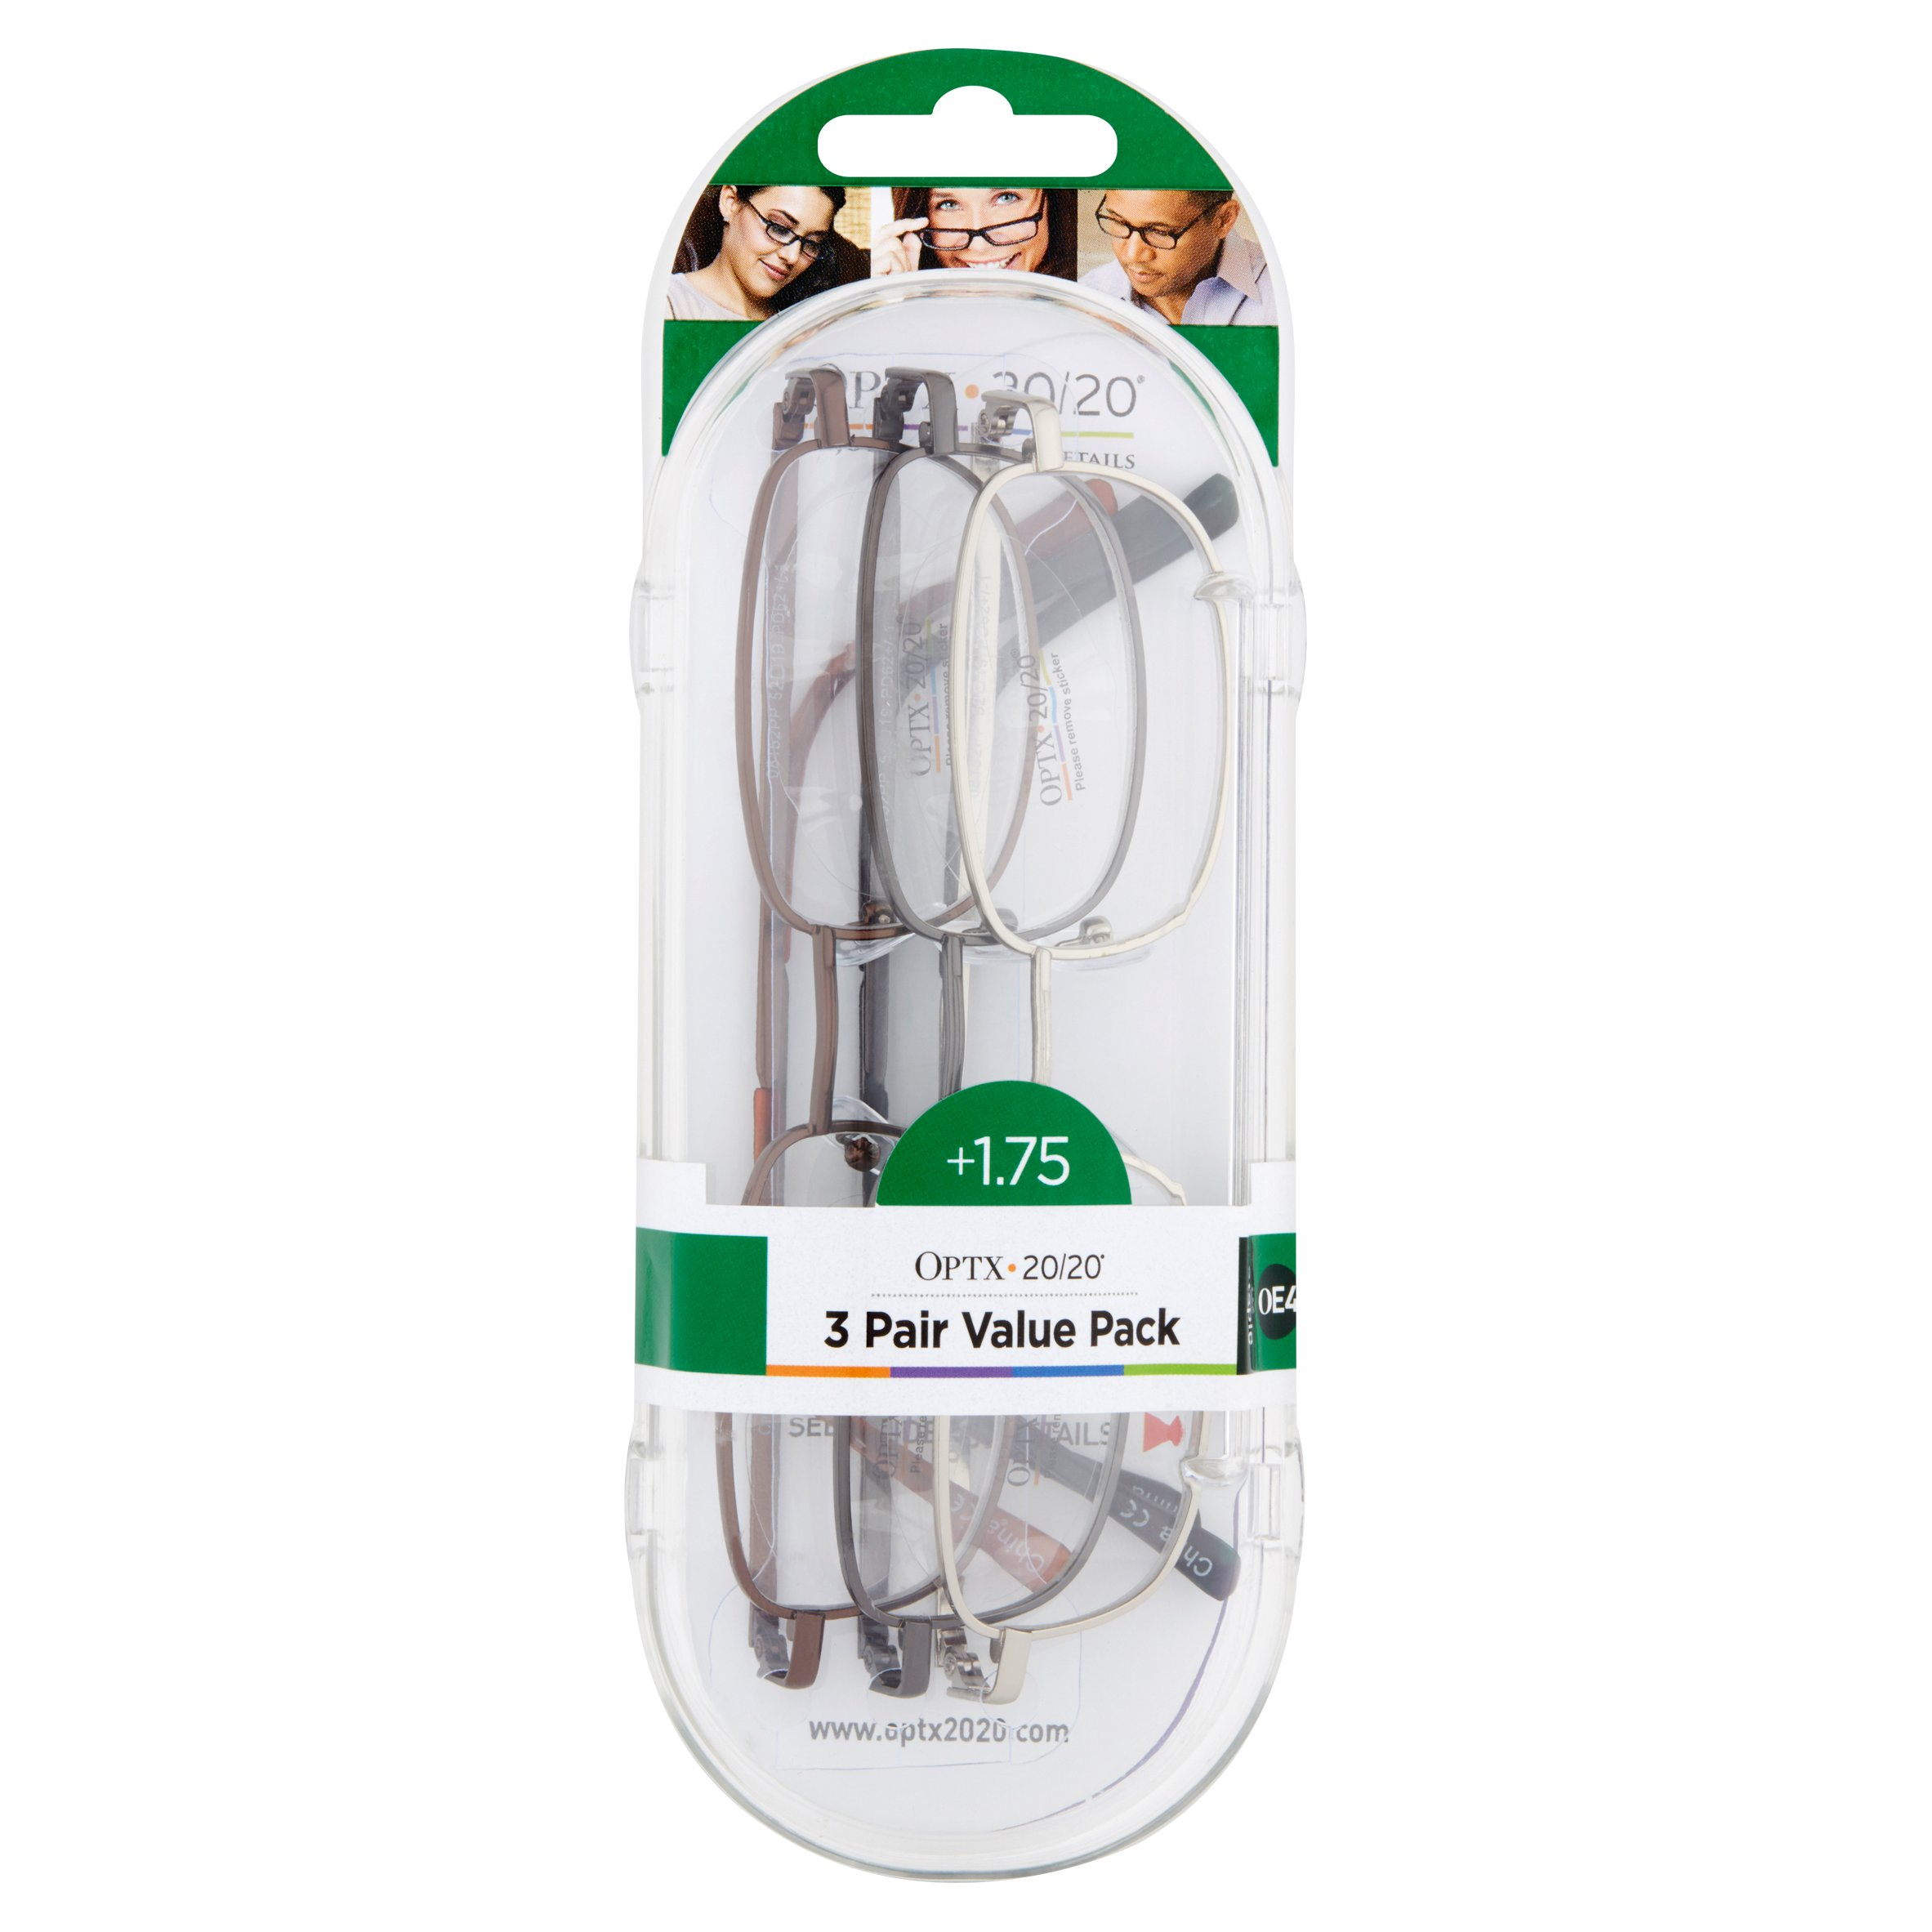 Optx 20/20 Staple OE4 +1.75, Reading Glasses Value Pack, 3 count